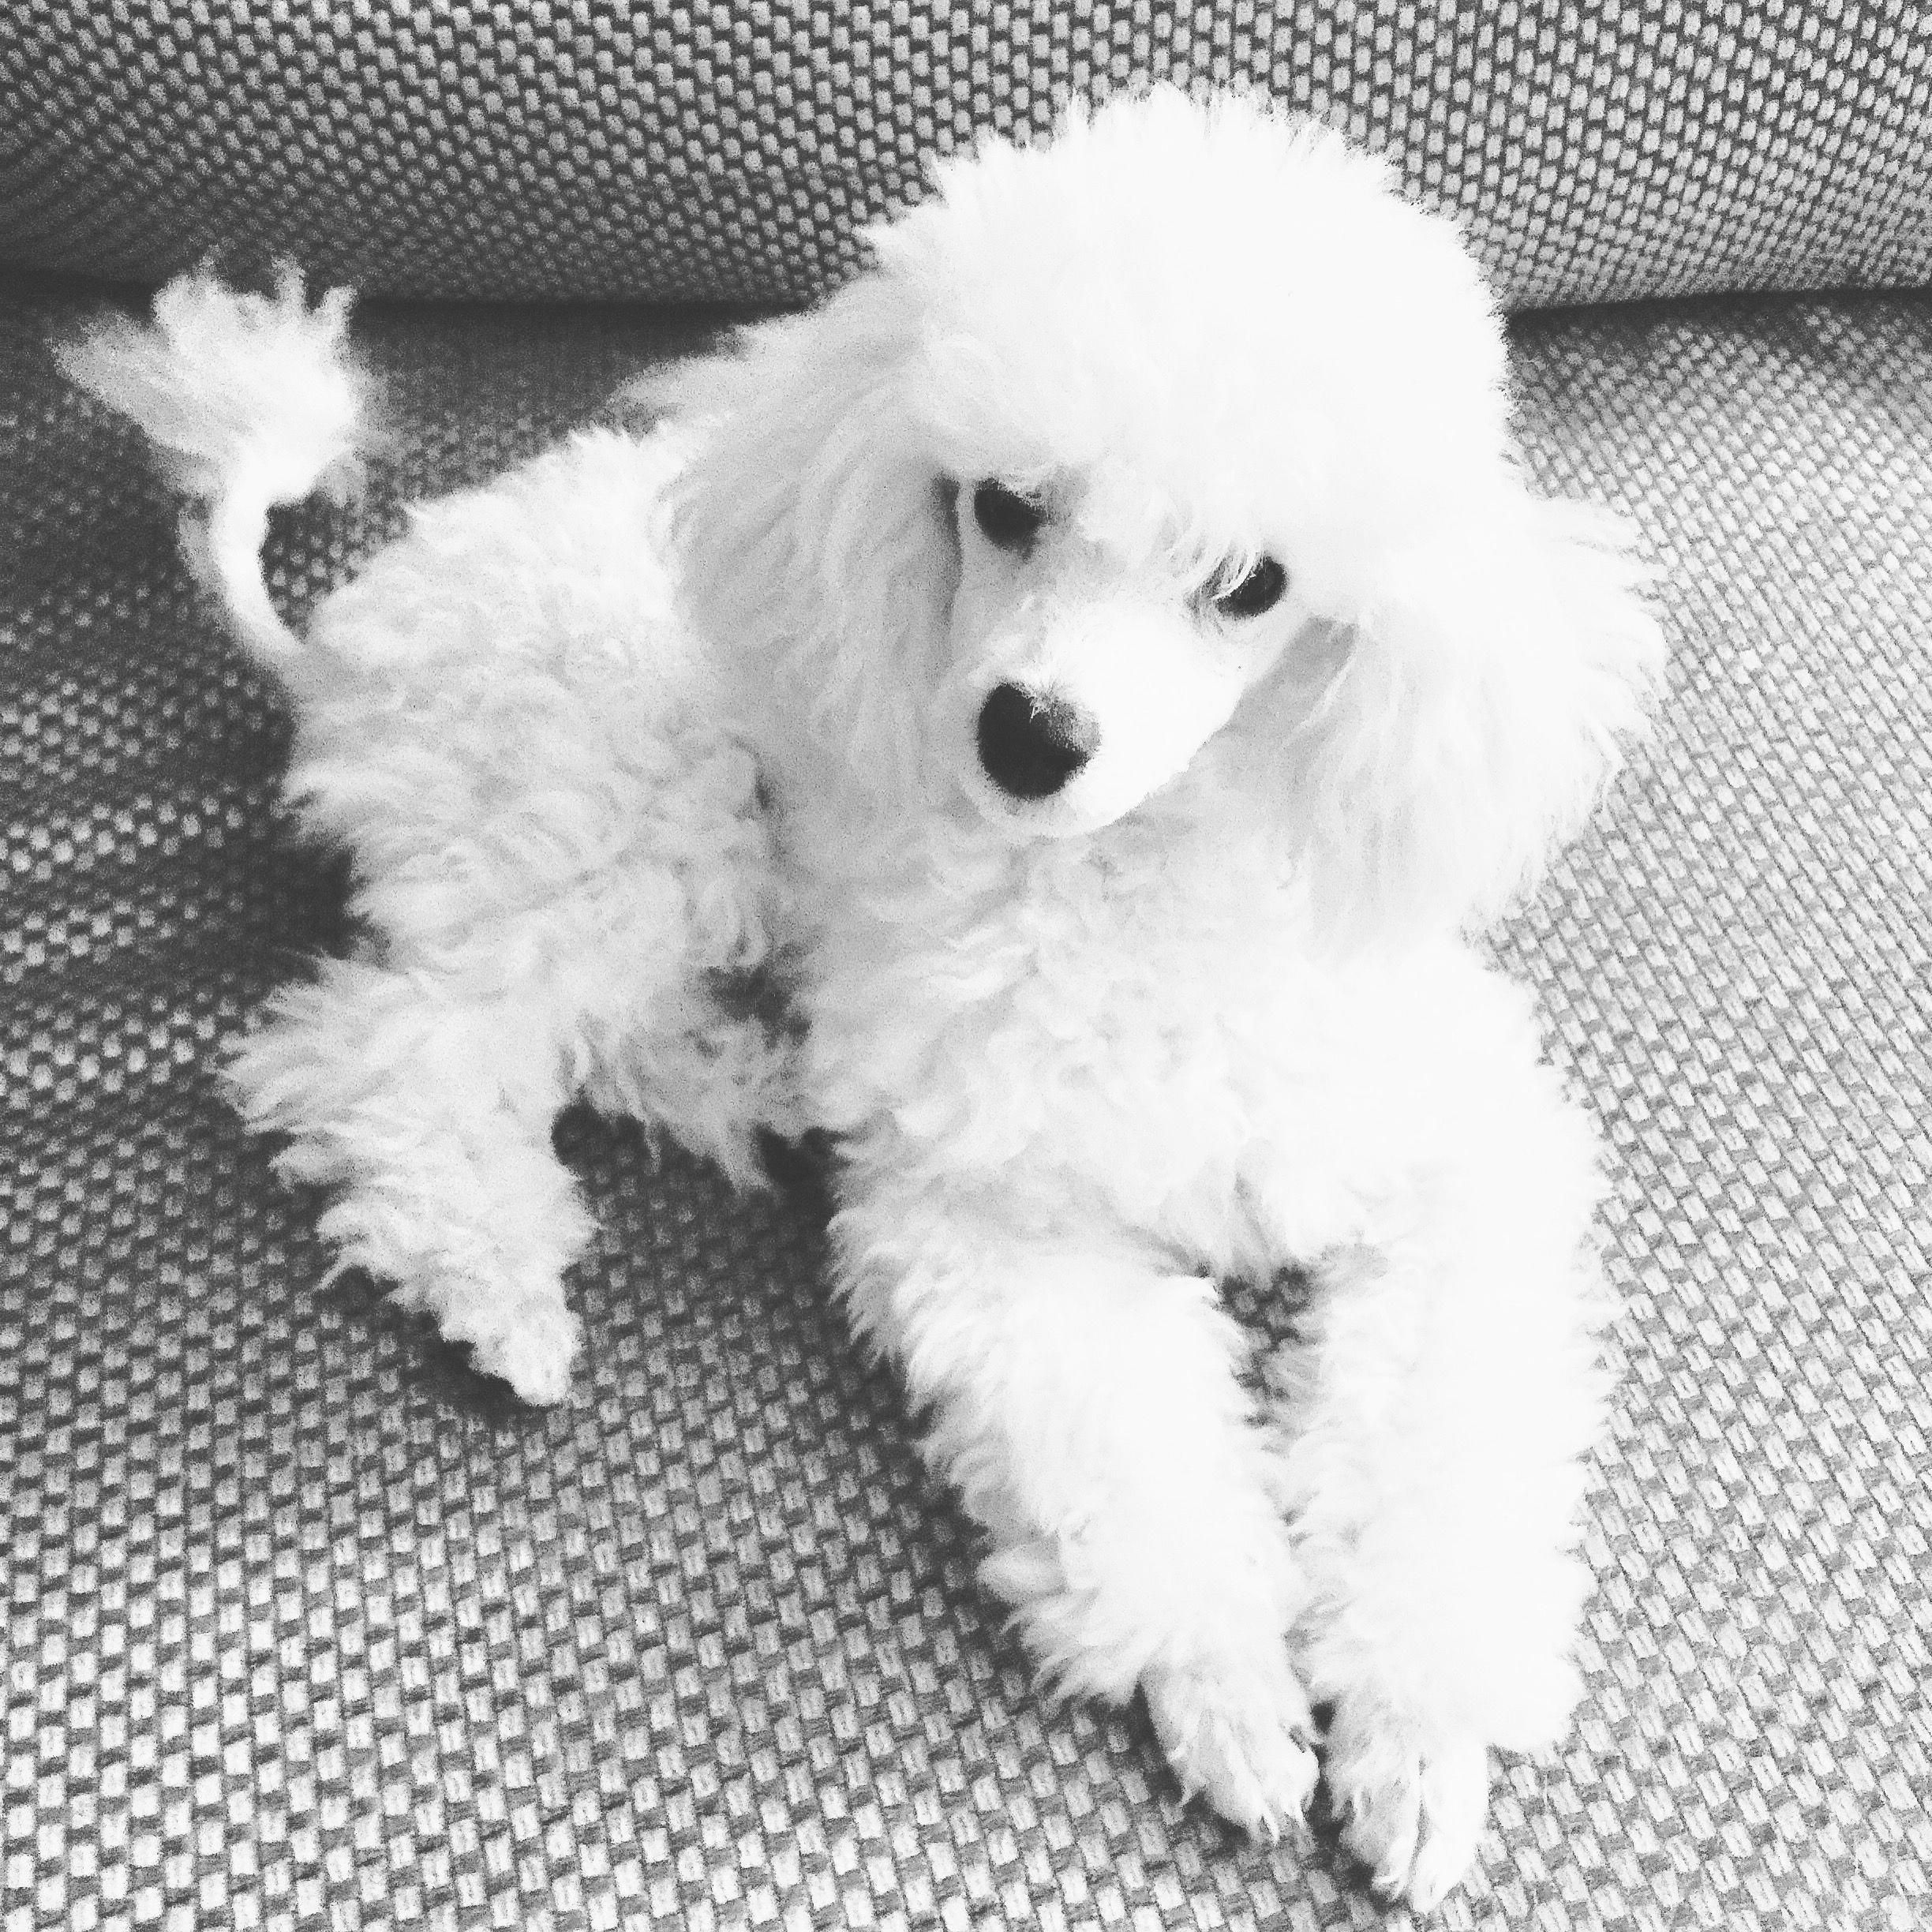 Poodles Smart Active And Proud Poodle Puppy White Toy Poodle